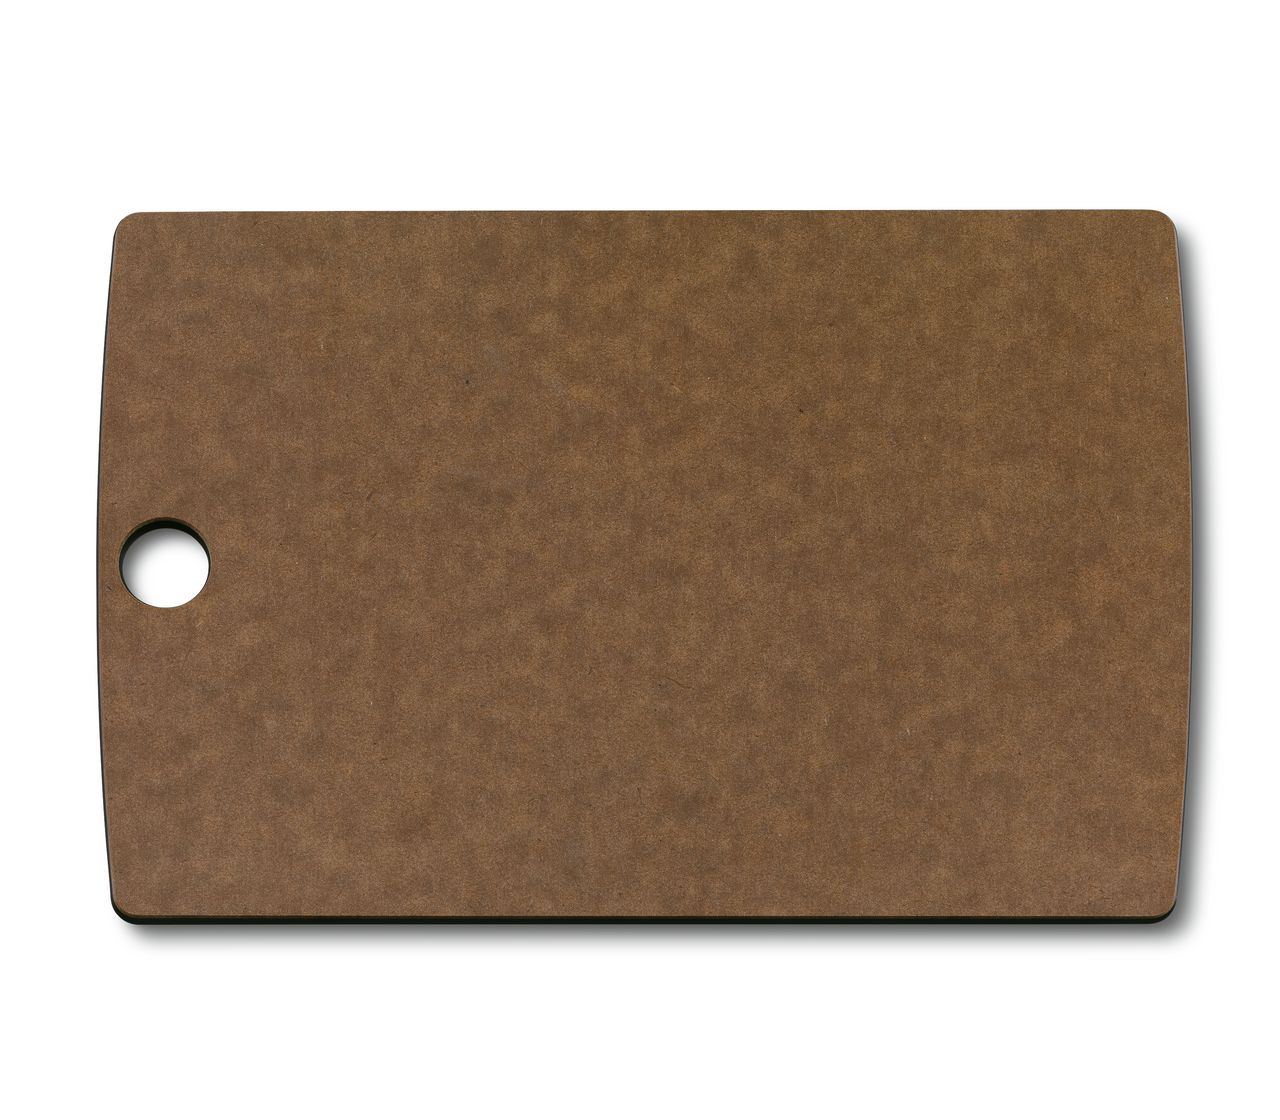 Allrounder Cutting Board Small-7.4110